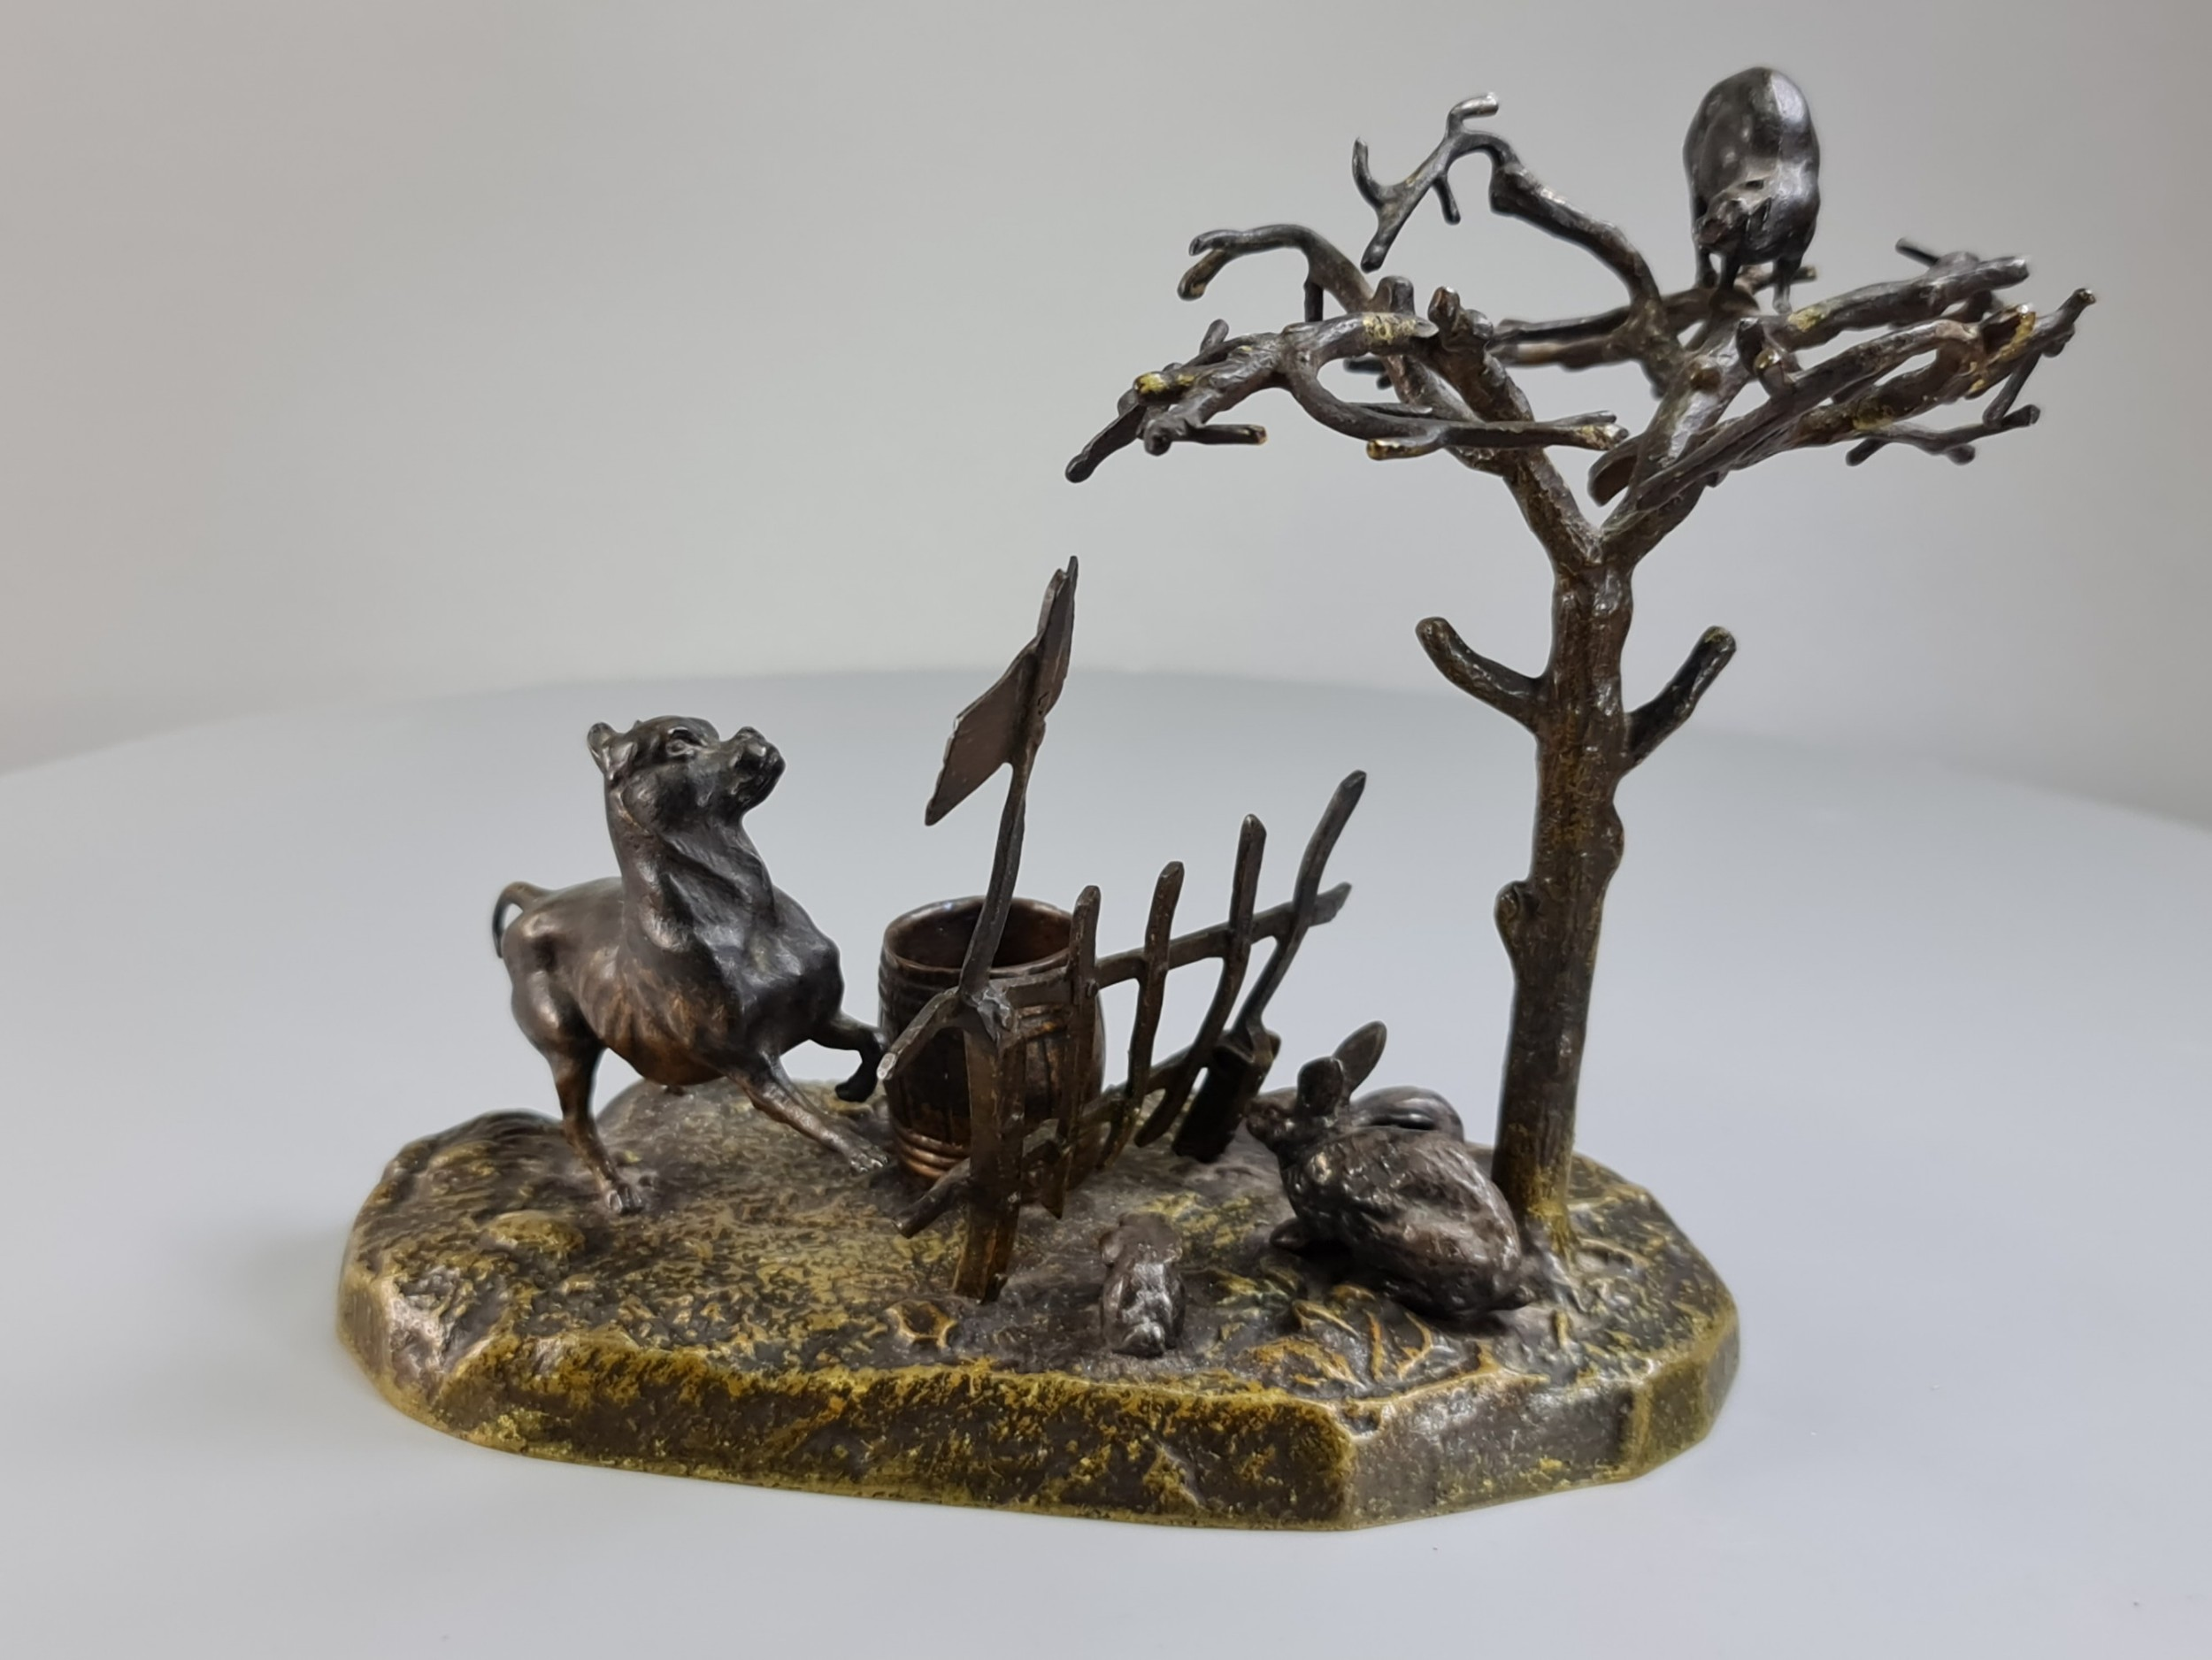 charming victorian bronze group of a dog chasing a cat up a tree c1880